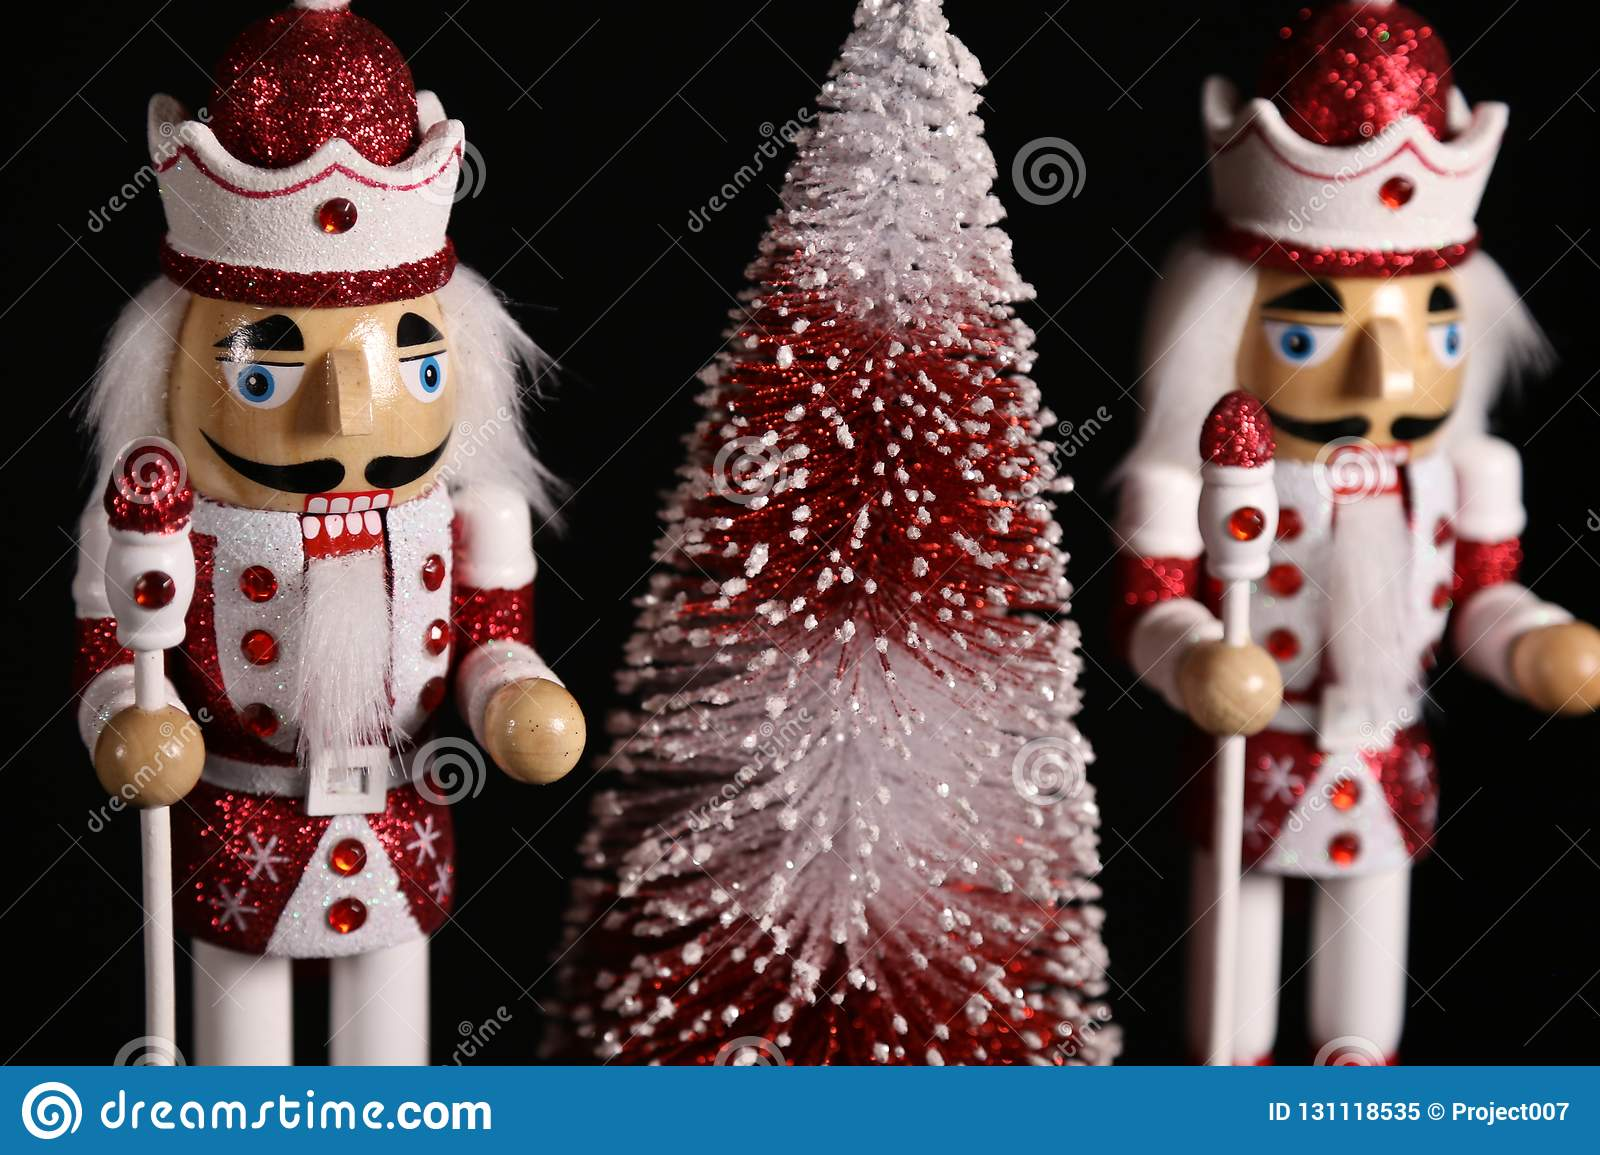 christmas season manufacturing christmas red decorations christmas wallpaper billboard nutcracker toy soldiers 131118535